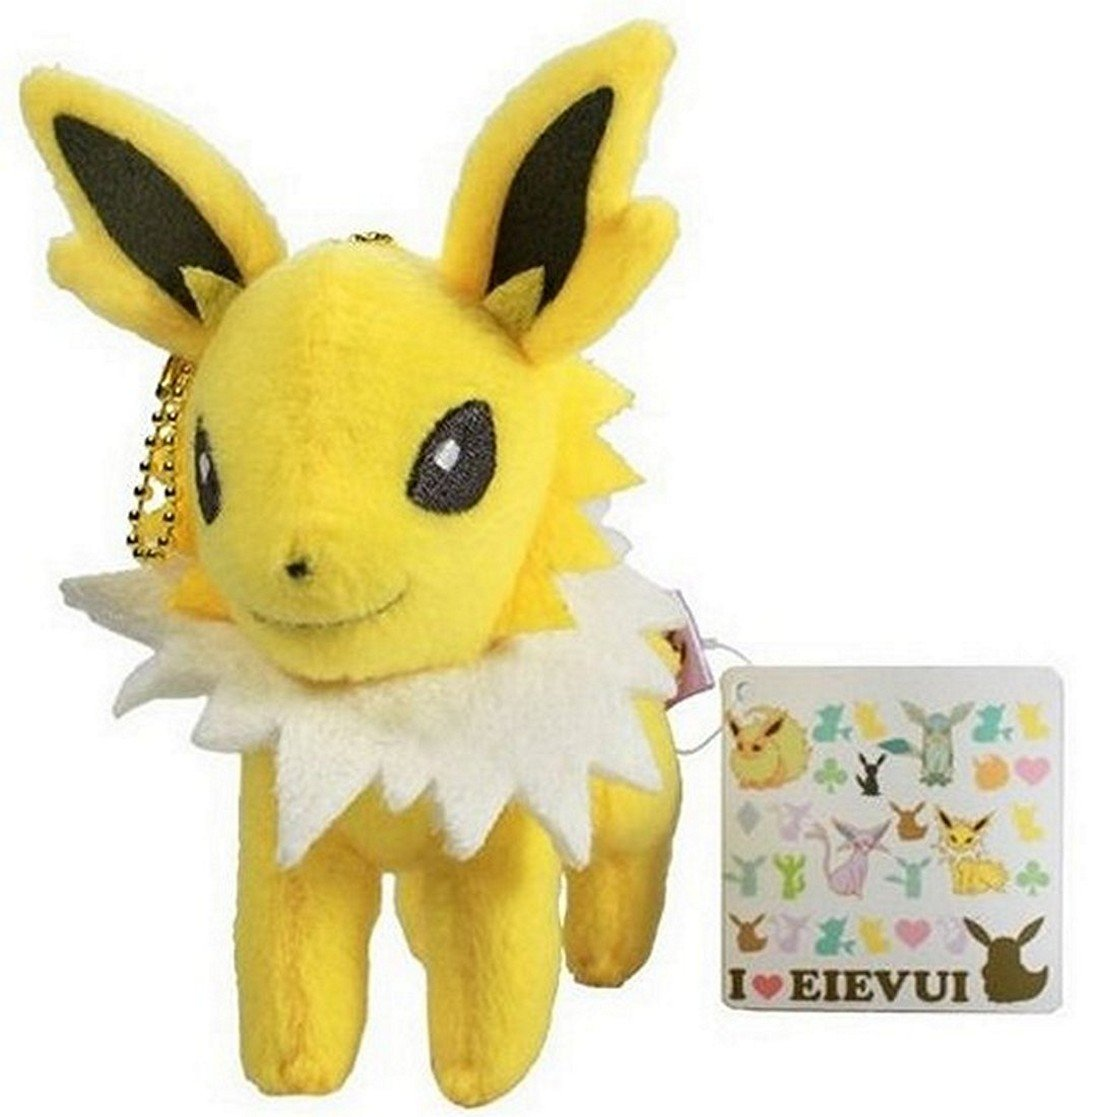 Pokemon I Love EEVEE Plush Keychain-aprox 5' Jolteon Banpresto Japan